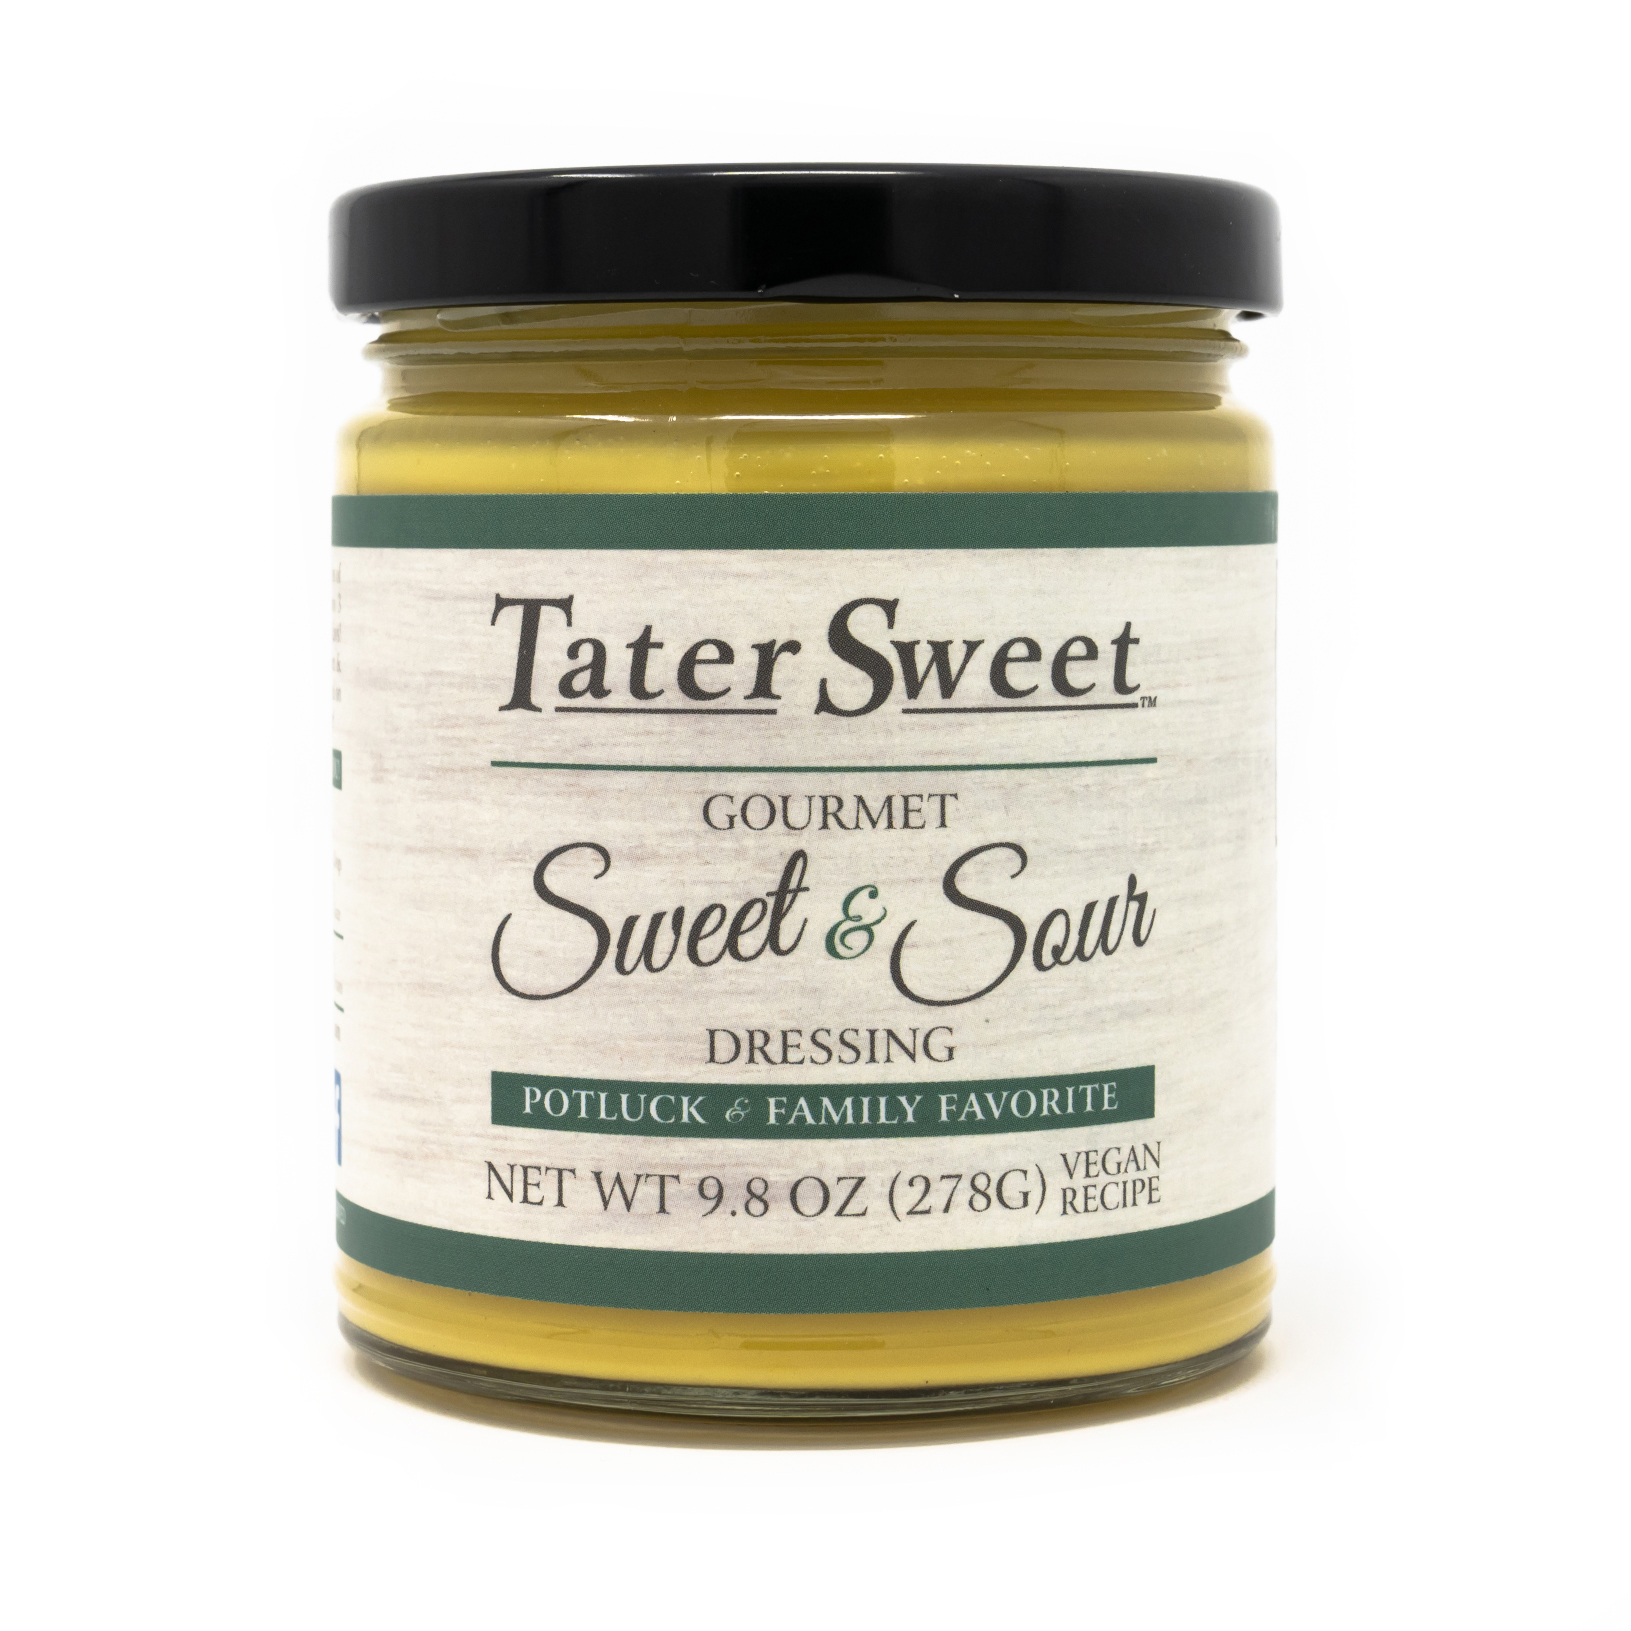 1 glass jar filled with TaterSweet Sweet & Sour Gourmet Dressing - Vegan